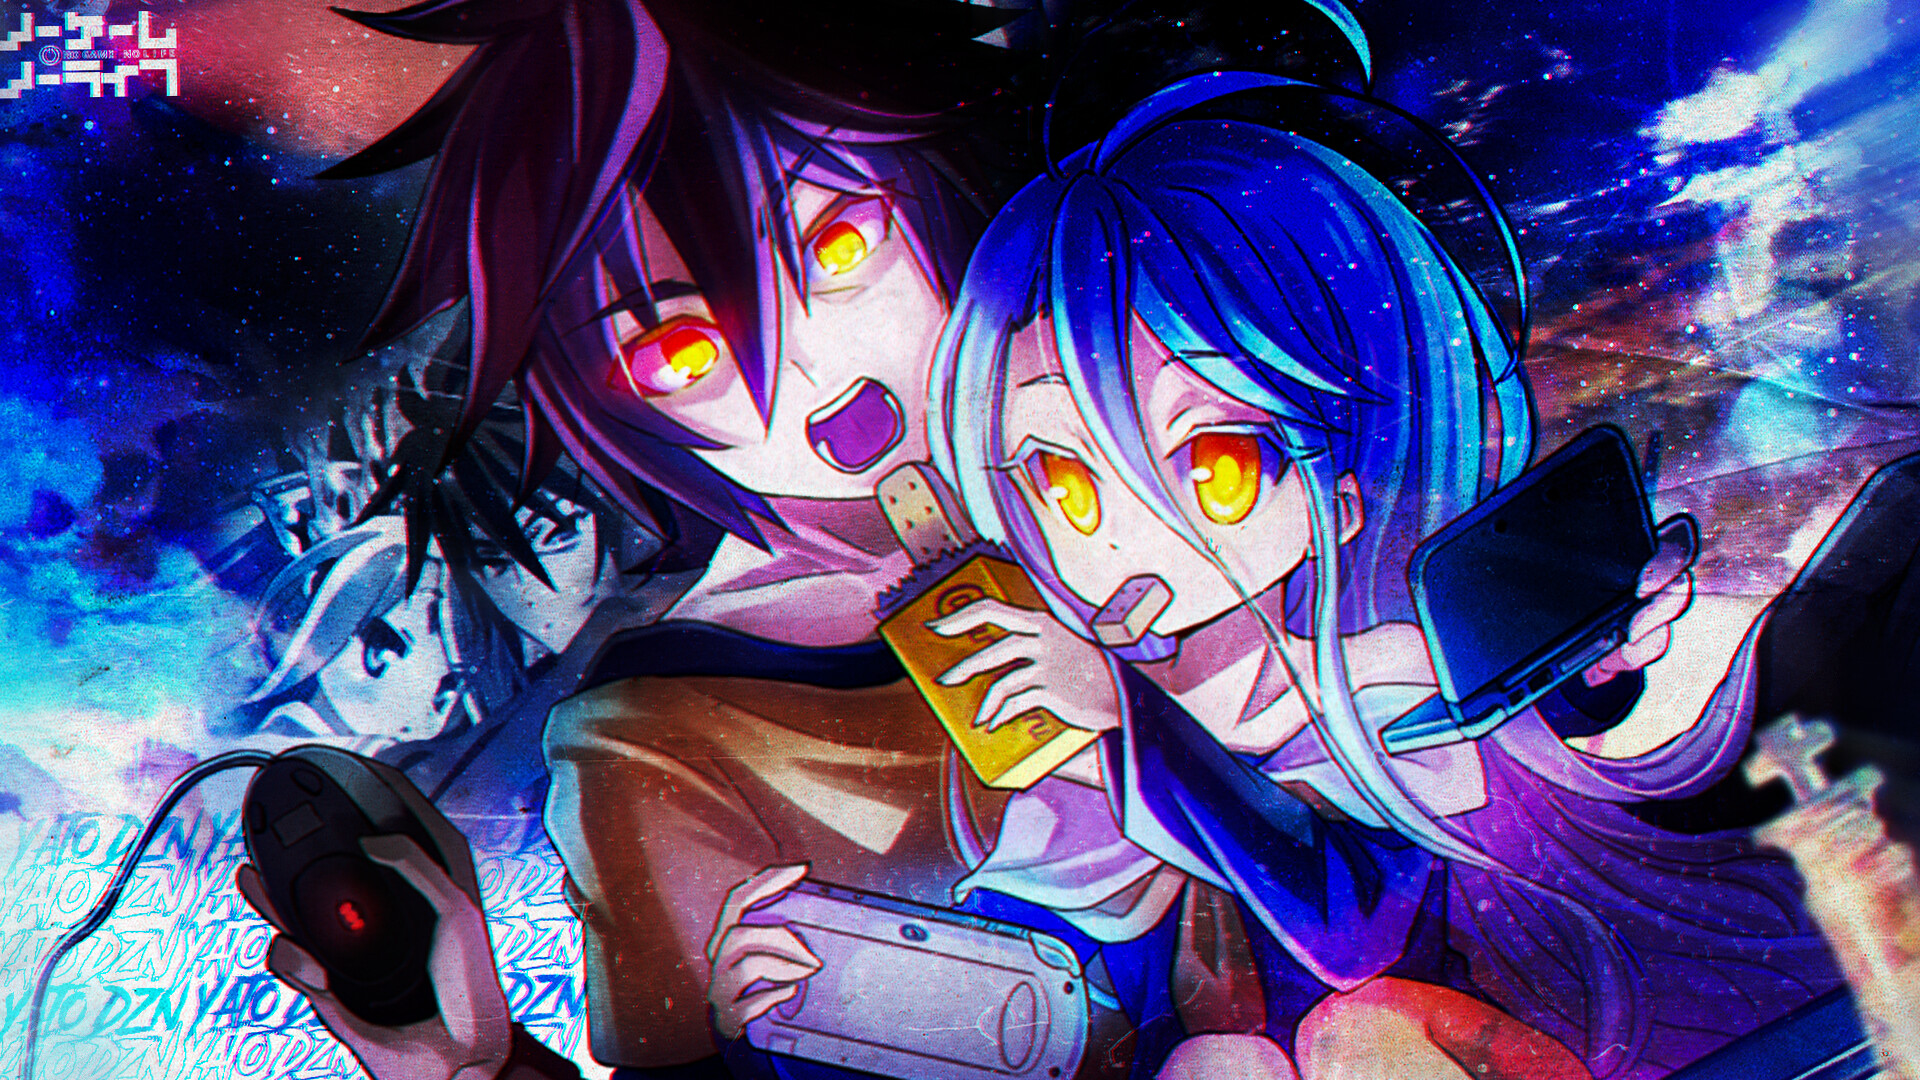 Artstation No Game No Life Yato Dzn